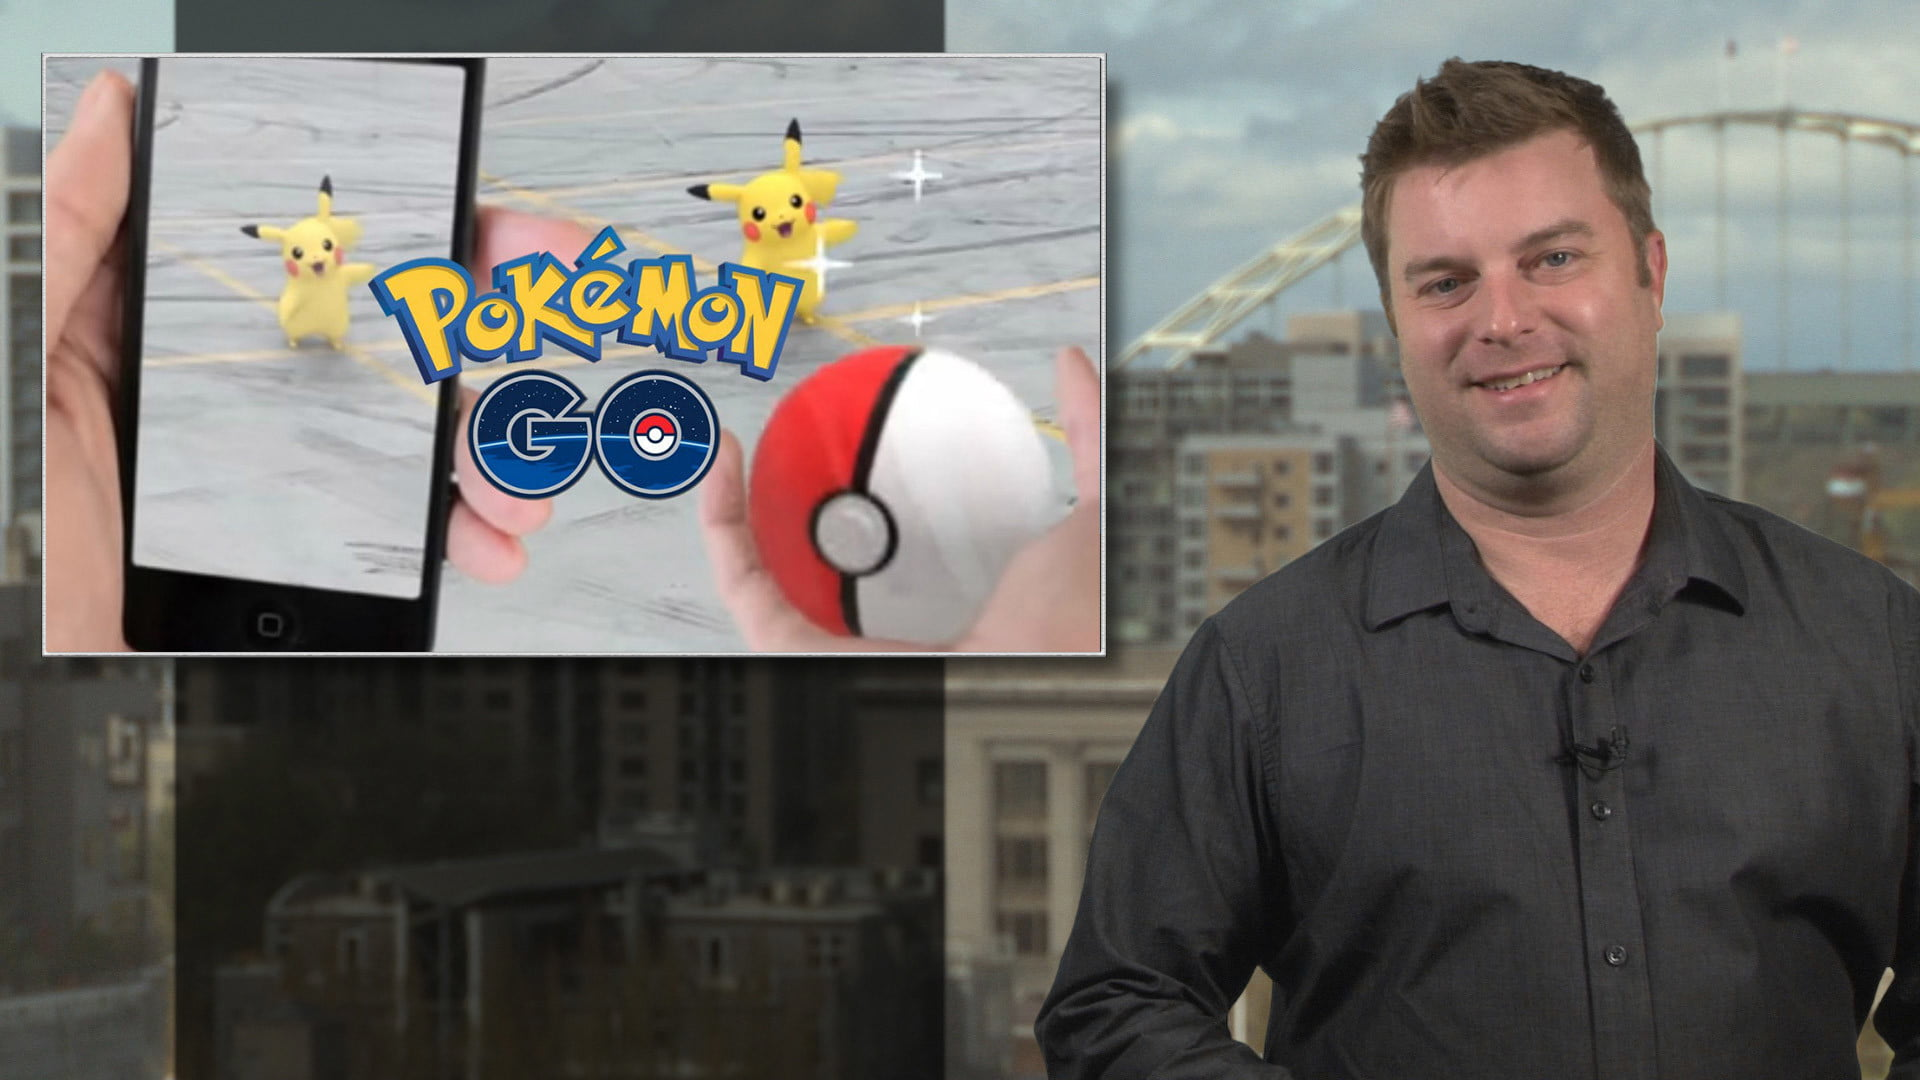 'Pokémon Go' surges past Twitter and Facebook, dominating Android downloads, daily use